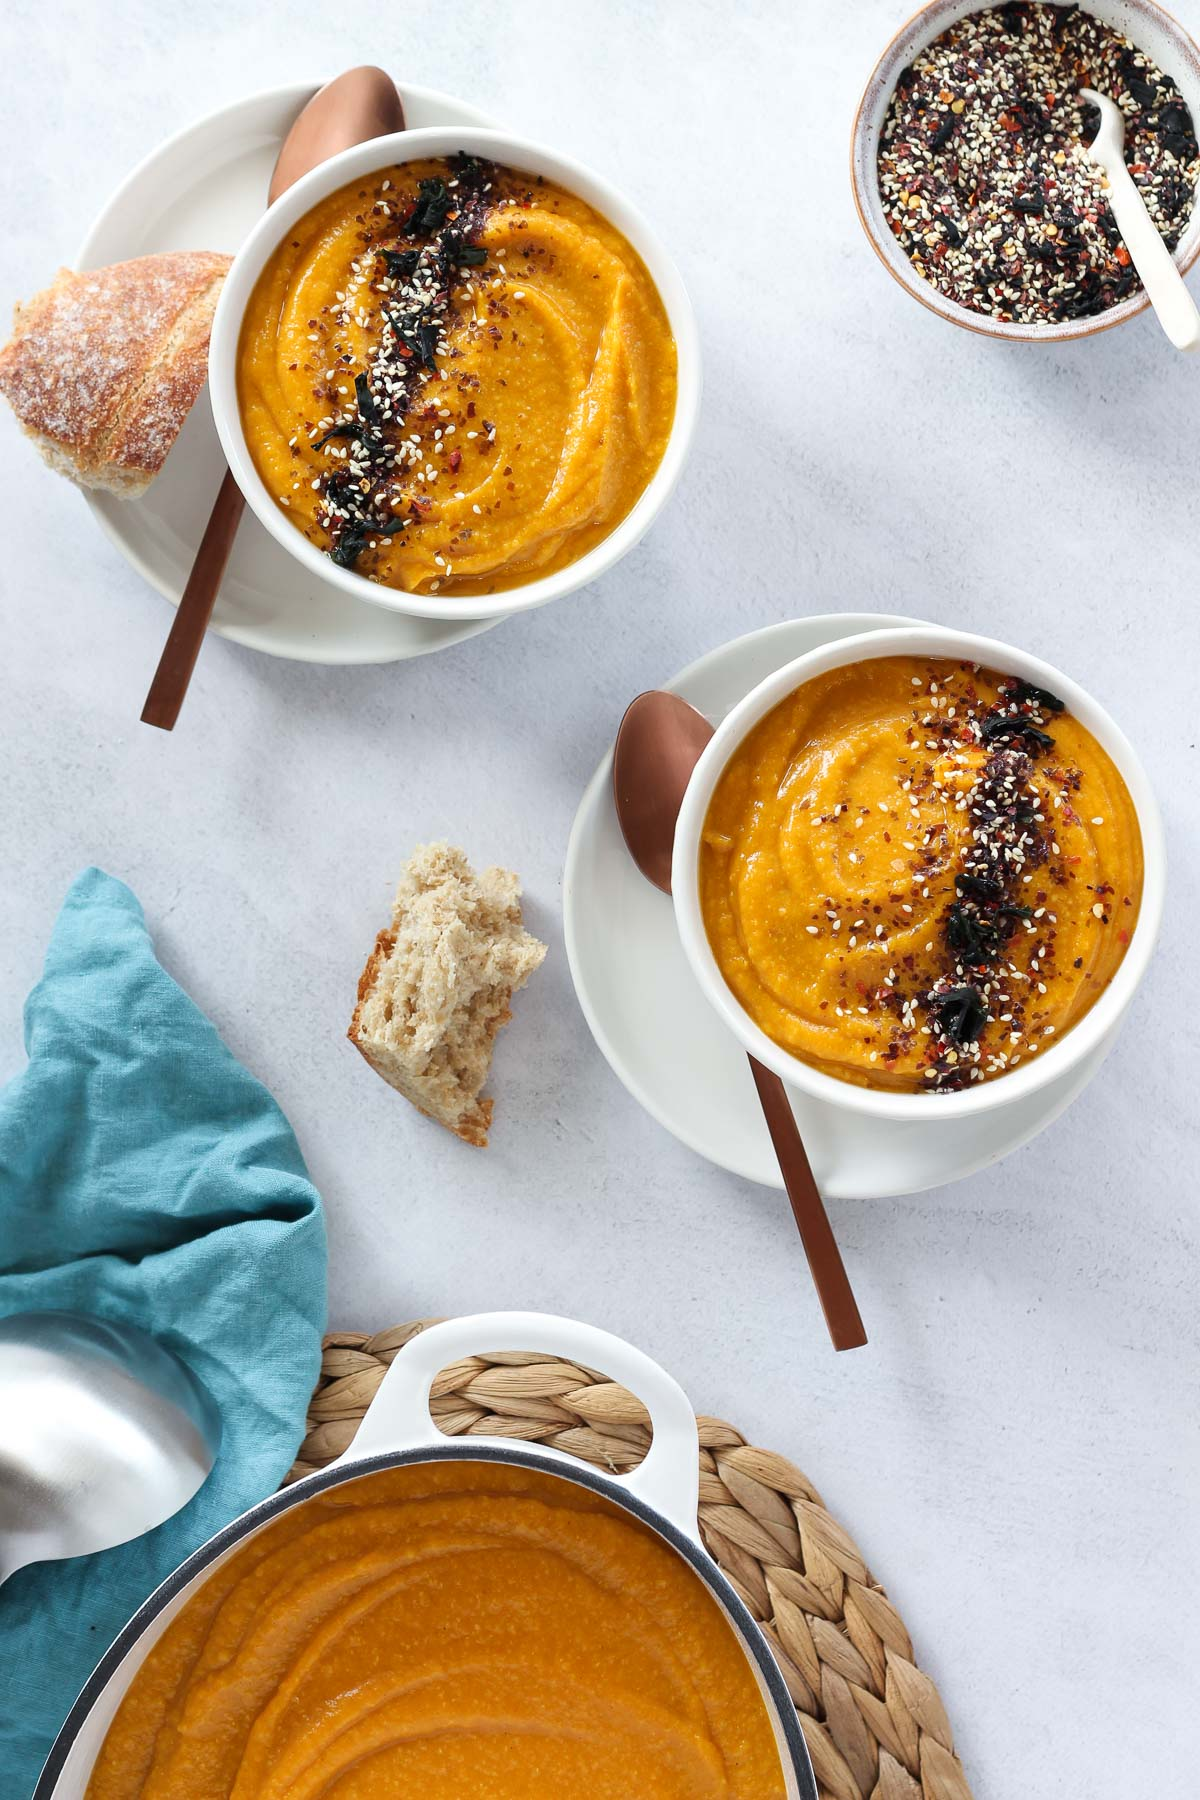 Bowls of pumpkin soup with crusty bread, furikake seasoning and larger pot of soup